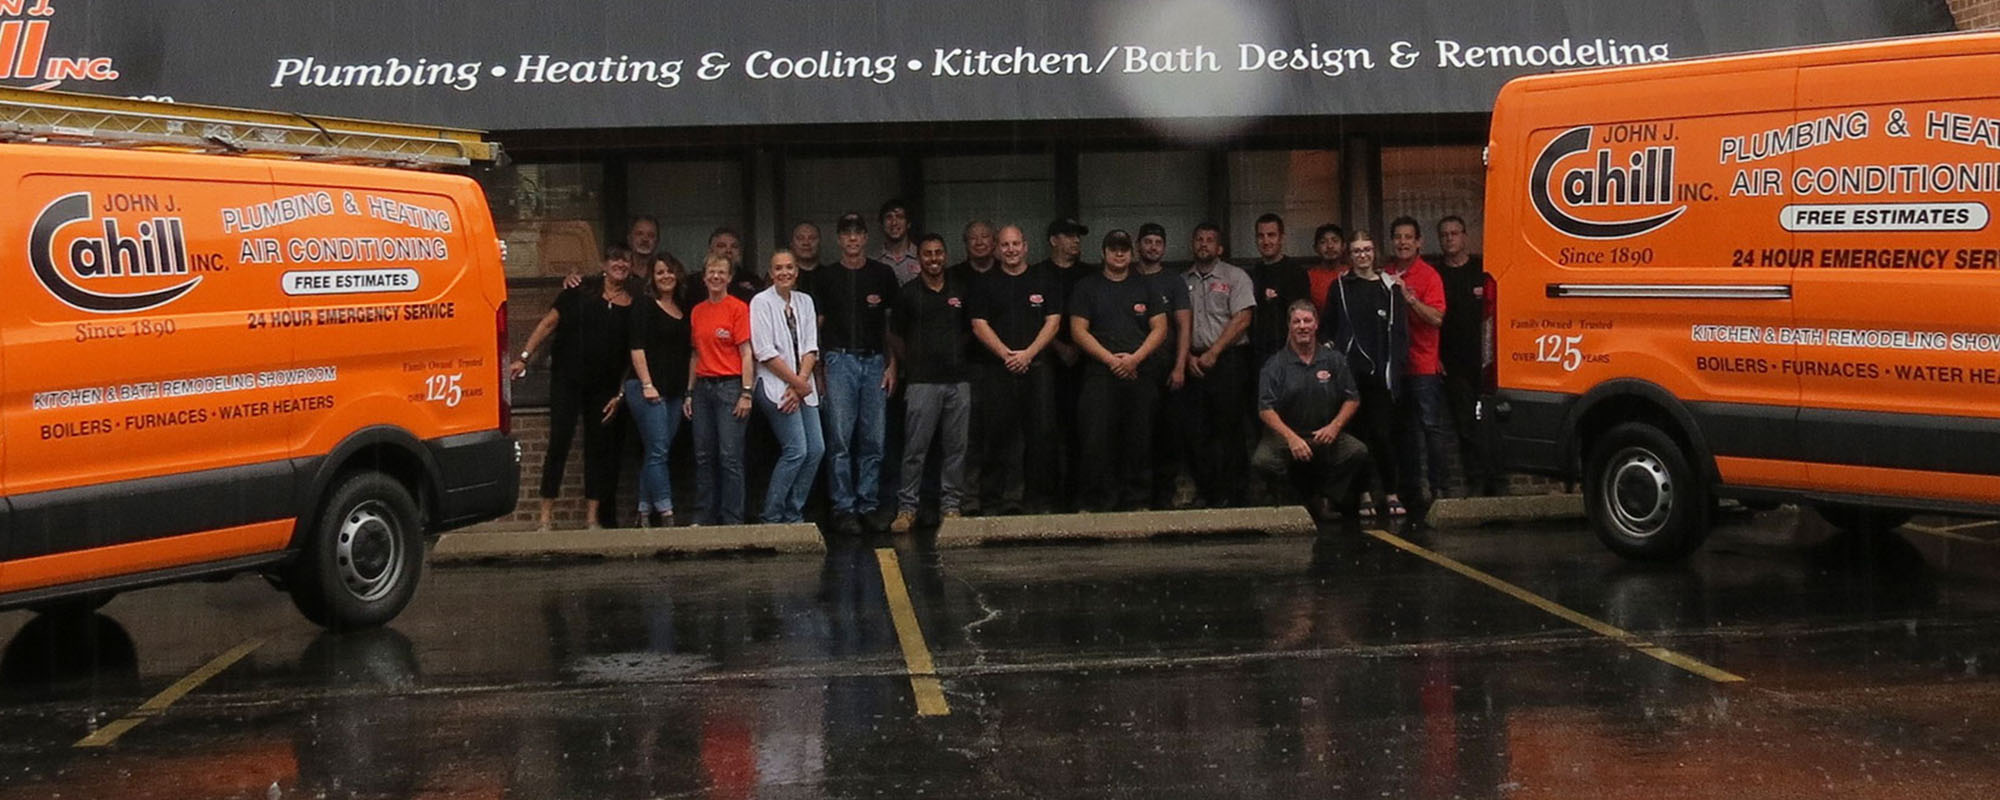 A group photo of the team at furnace repair company John J. Cahill Inc. servicing Chicago, IL